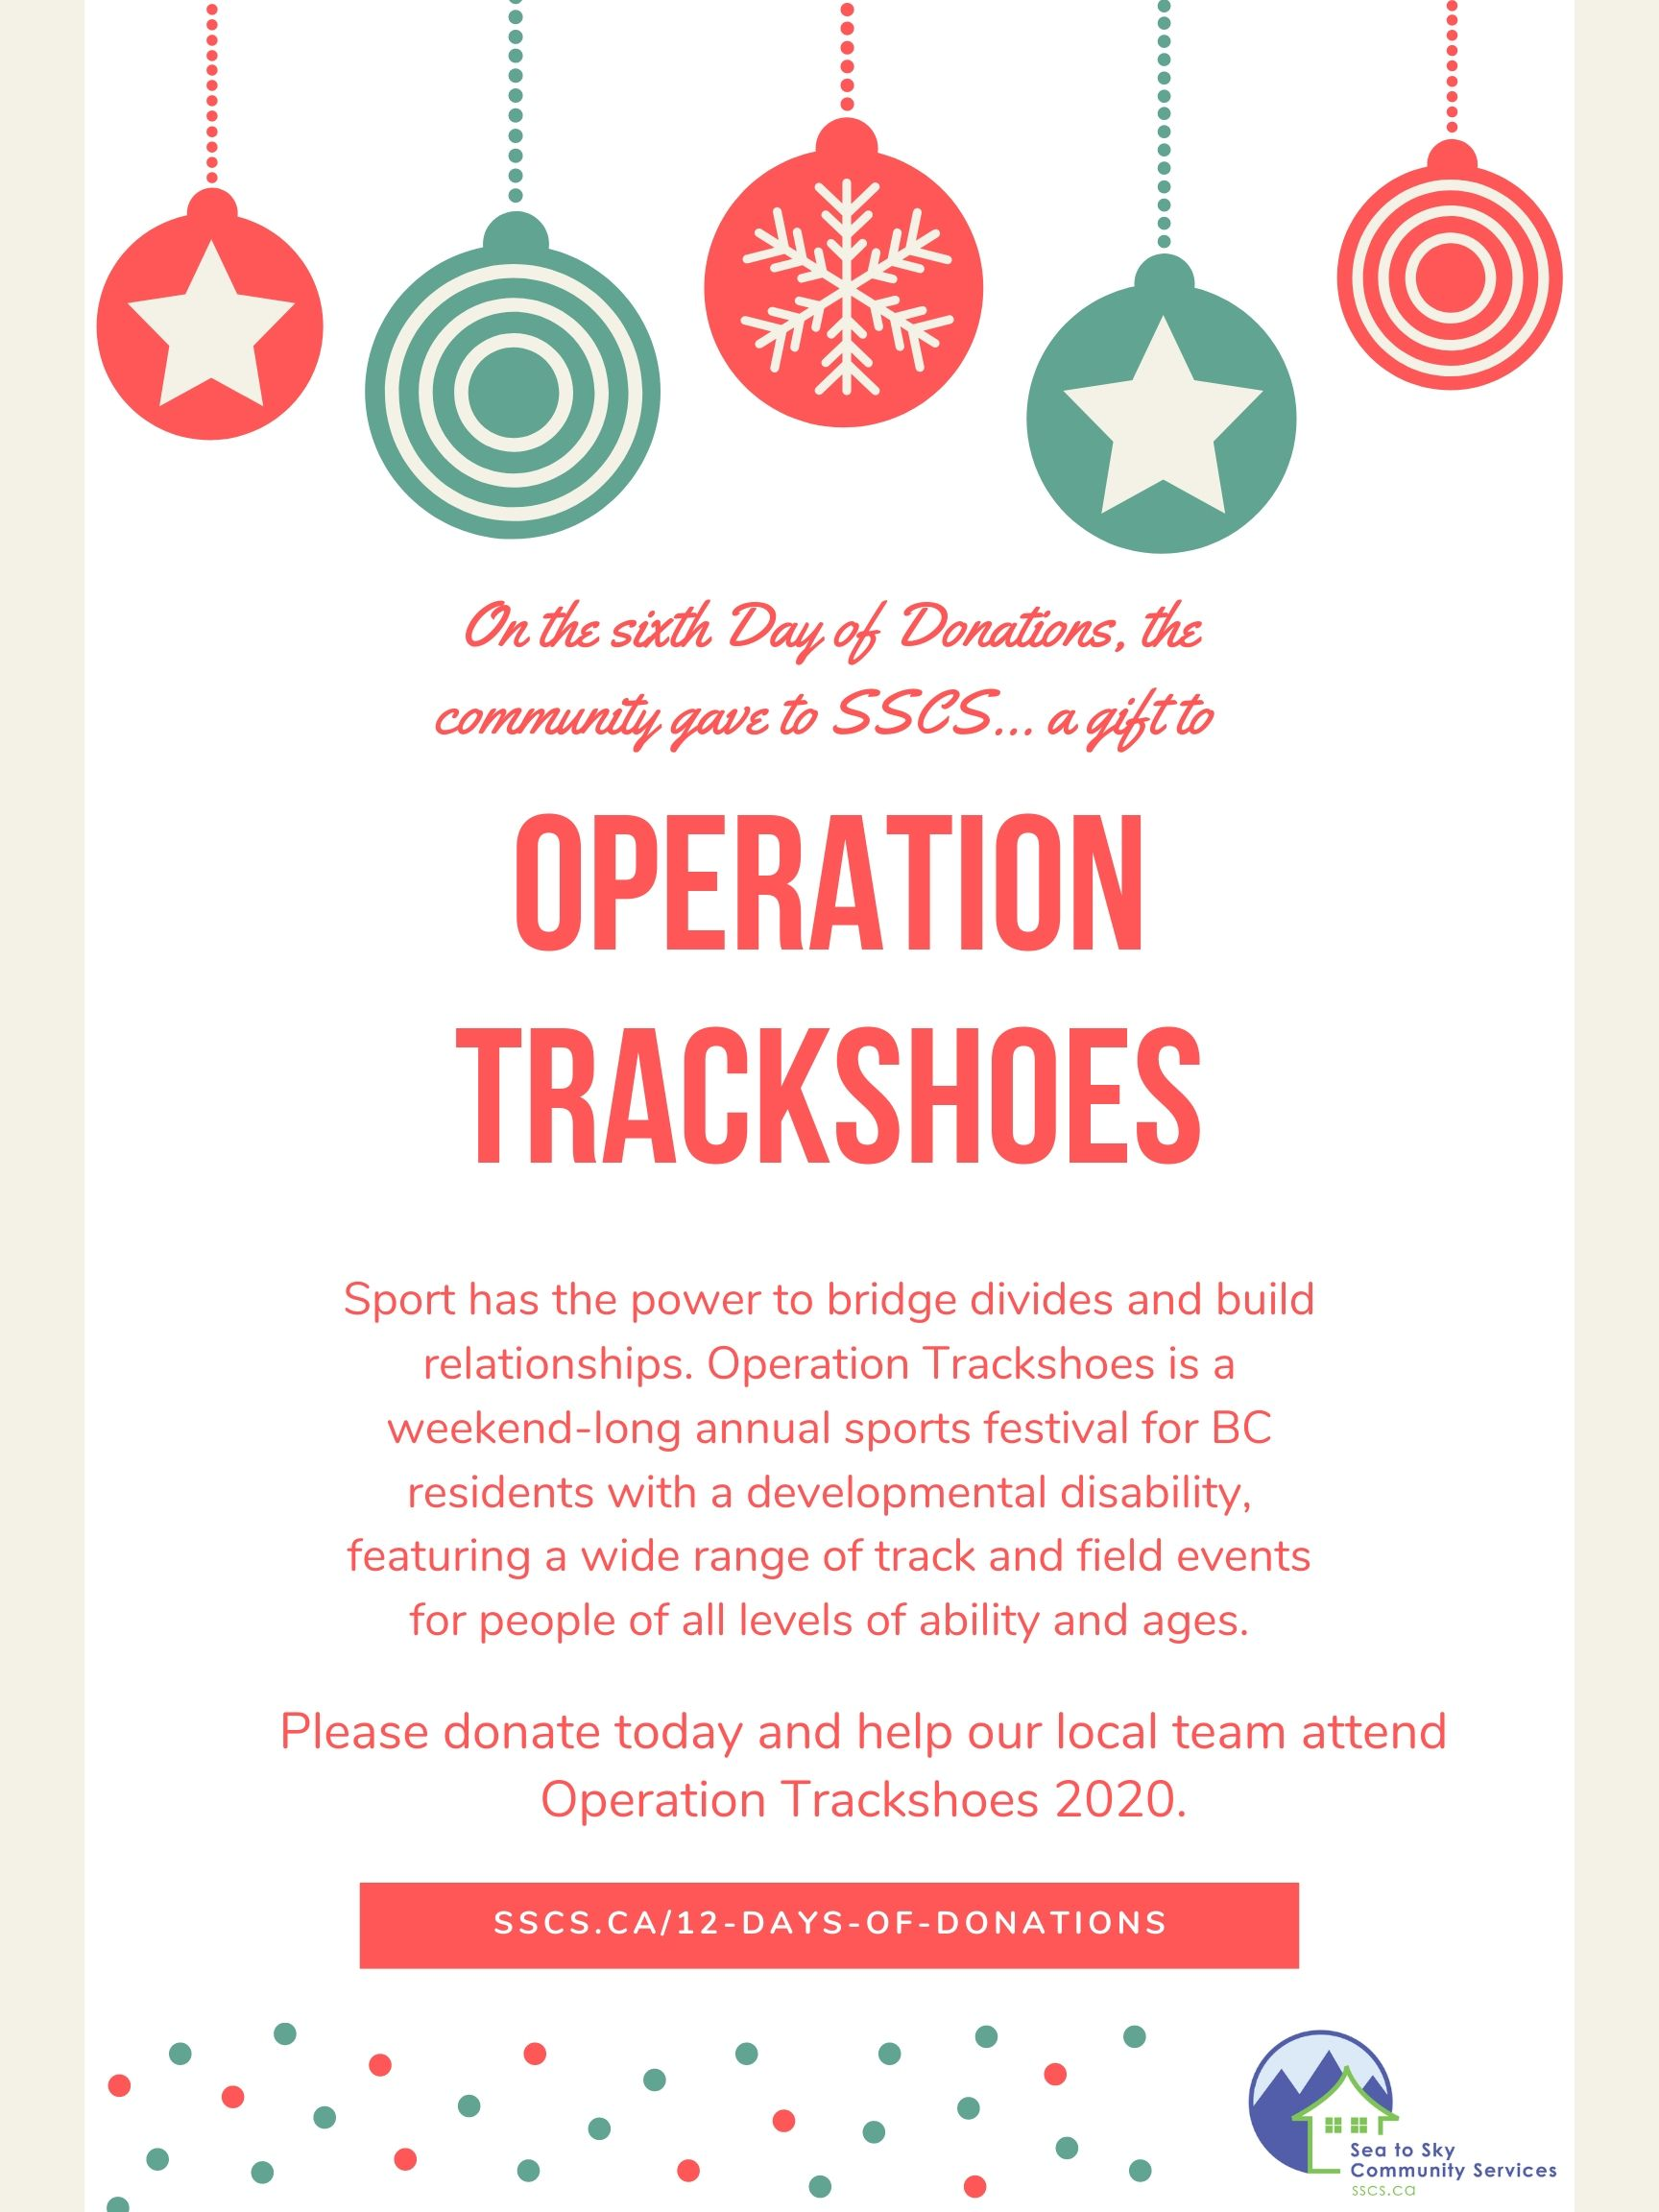 Day 6 - Operation Trackshoes